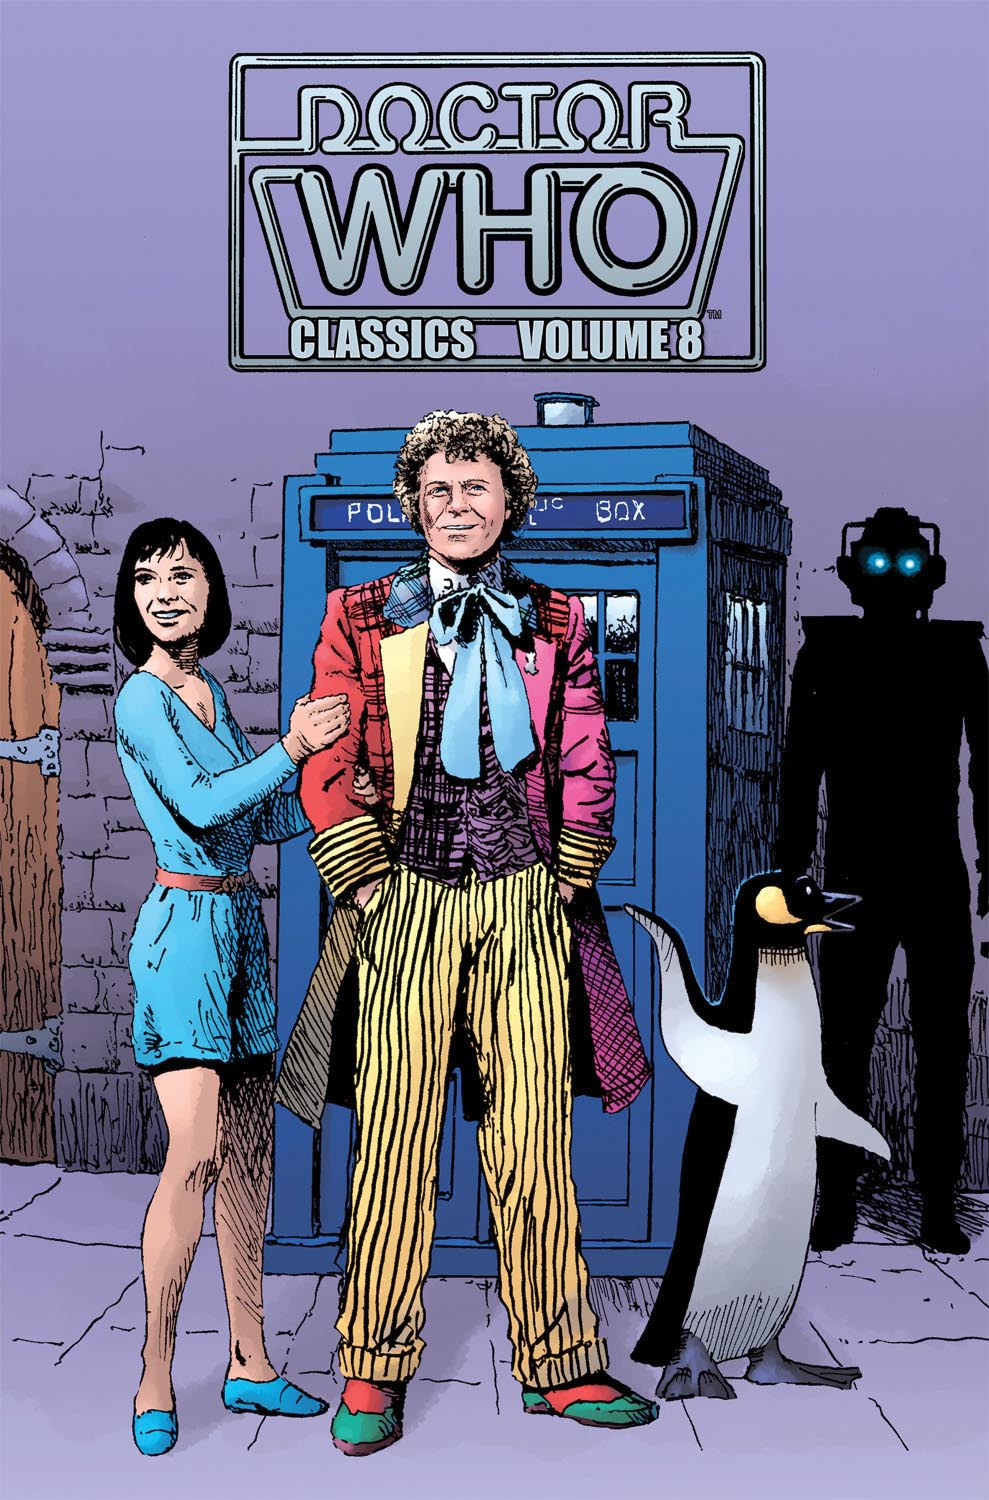 Doctor Who Classics Vol. 8